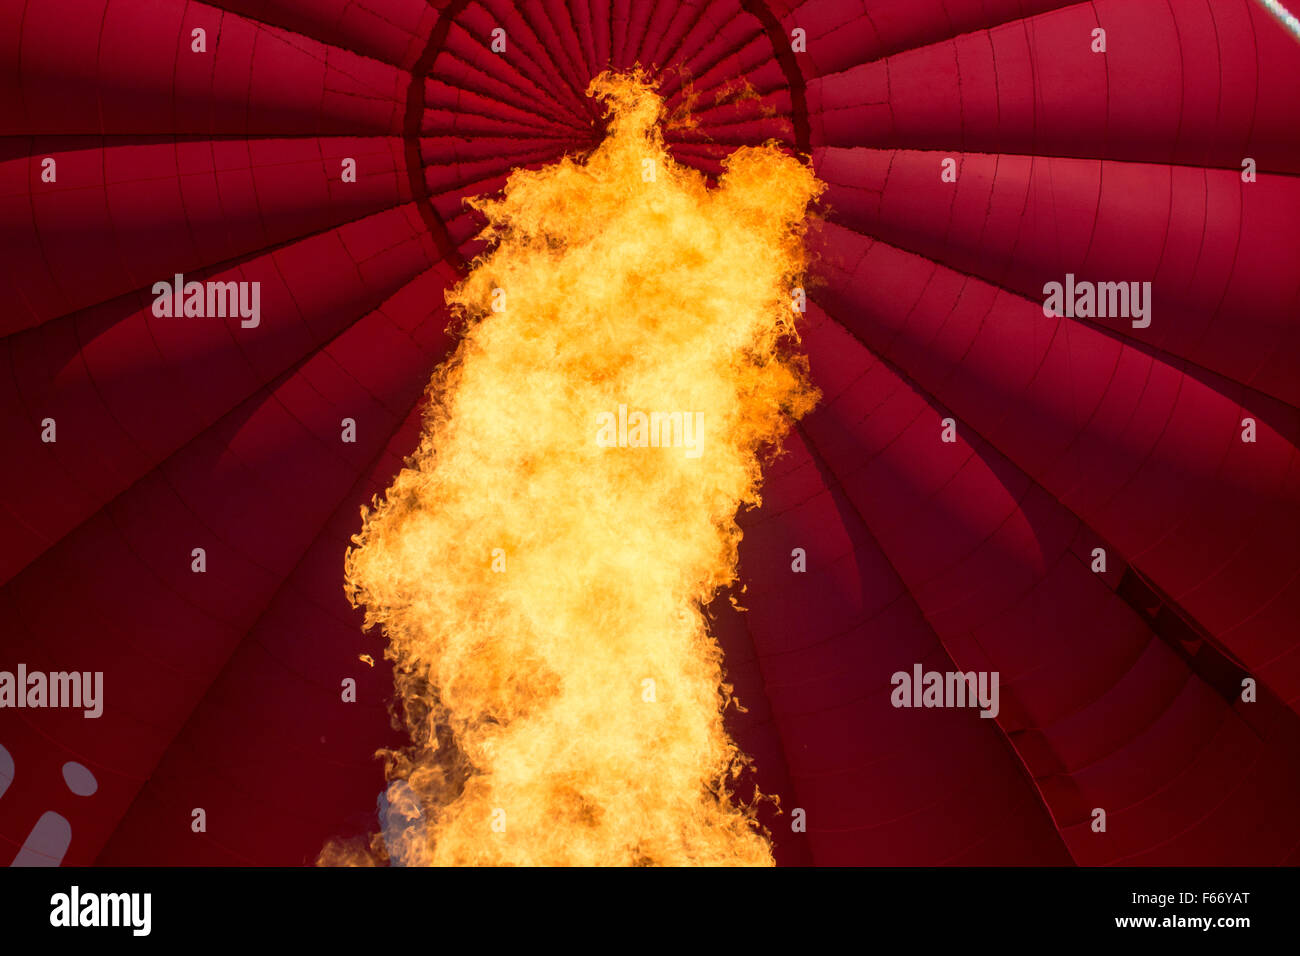 Gas flame heating hot air balloon to help it rise. - Stock Image